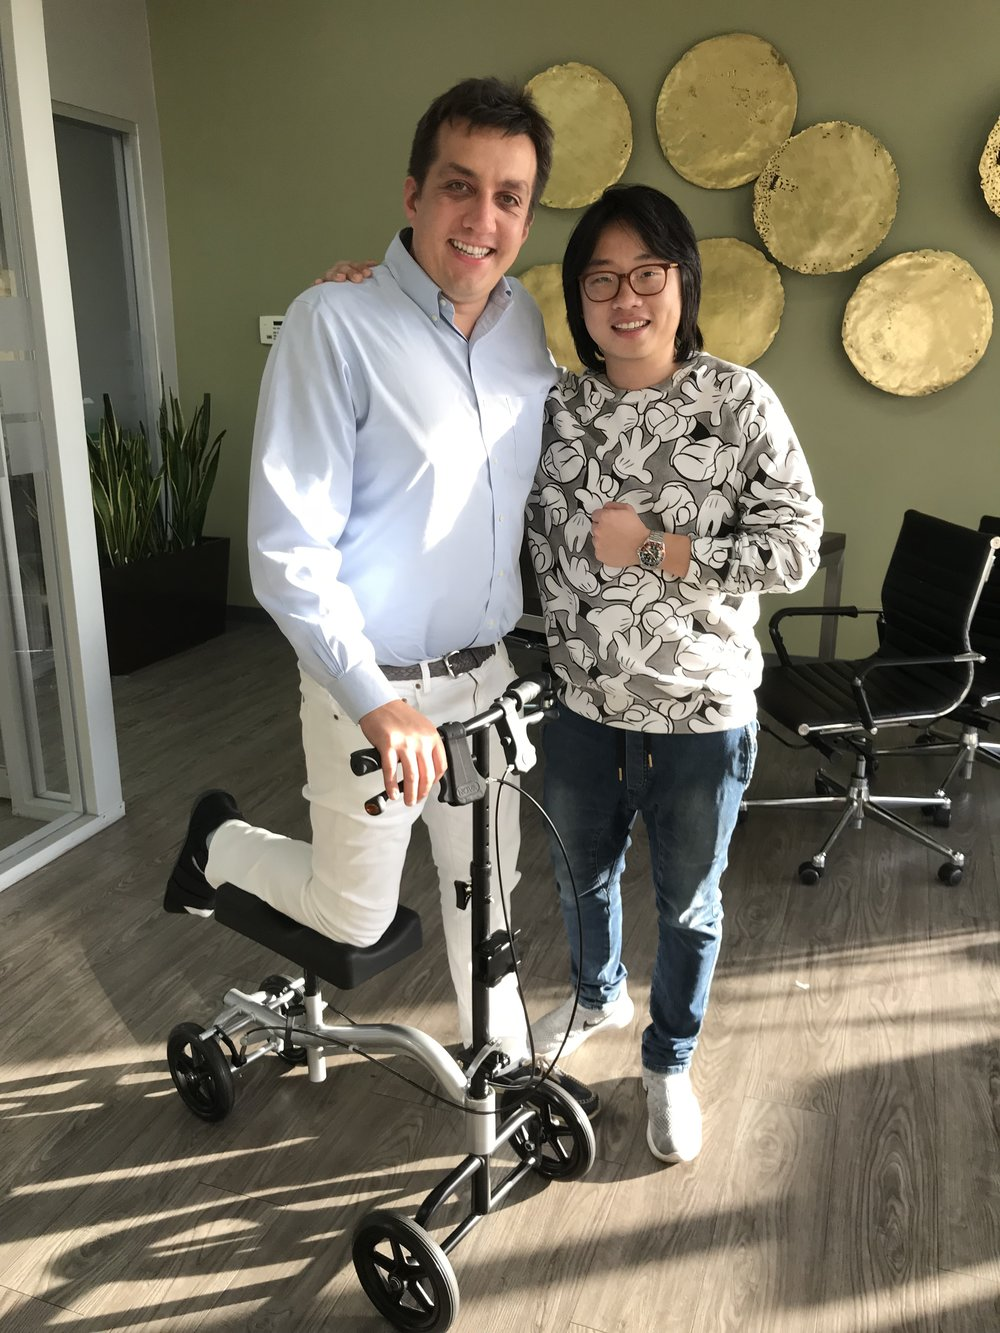 Eric Wind with Jimmy O. Yang at Bob's Watches in Huntington Beach, California in November 2017. Eric was recovering from a broken foot at the time.